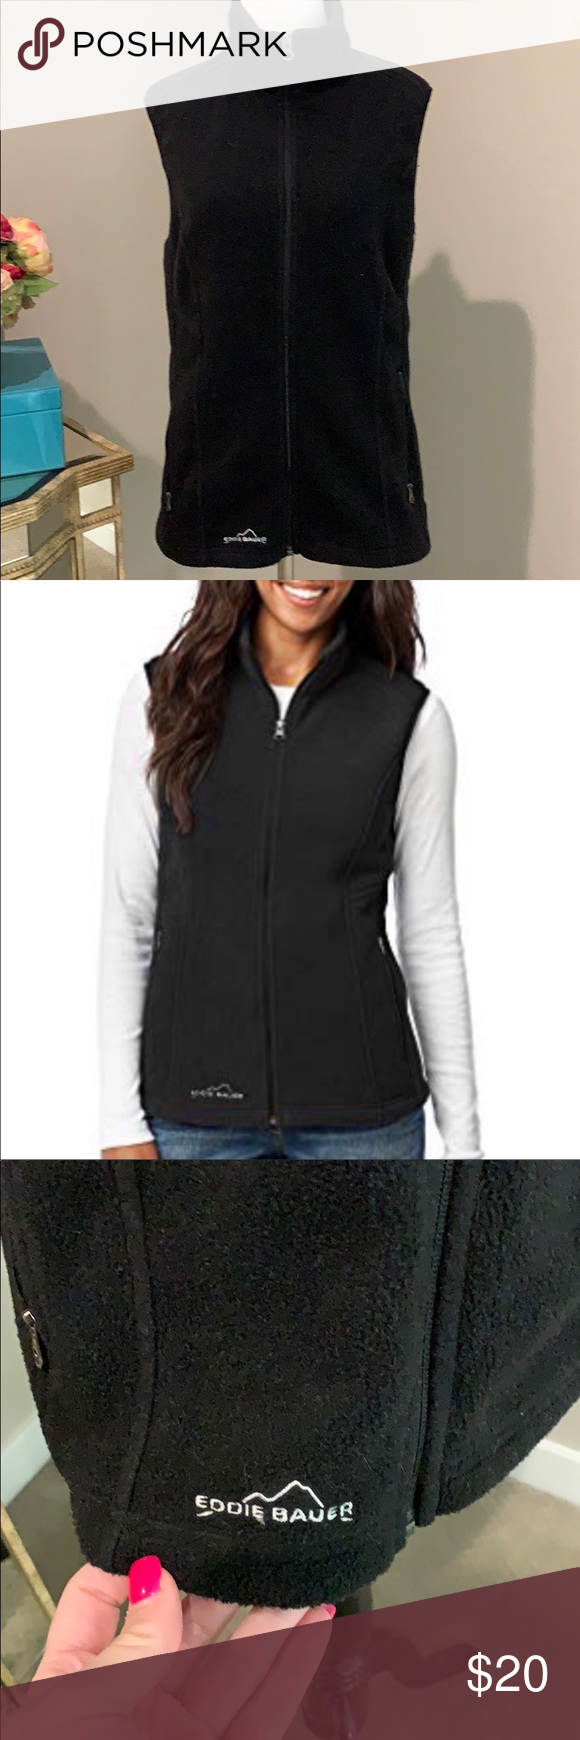 Eddie Bauer fleece zip vest Clothes design, Eddie bauer